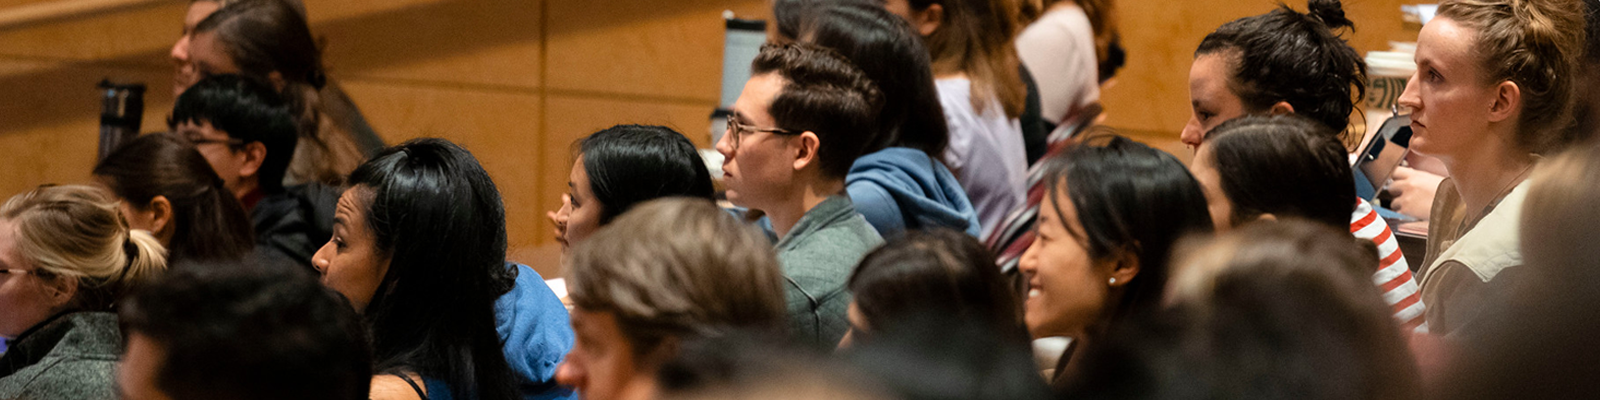 University of Washington School of Public Health students sitting in a lecture hall.